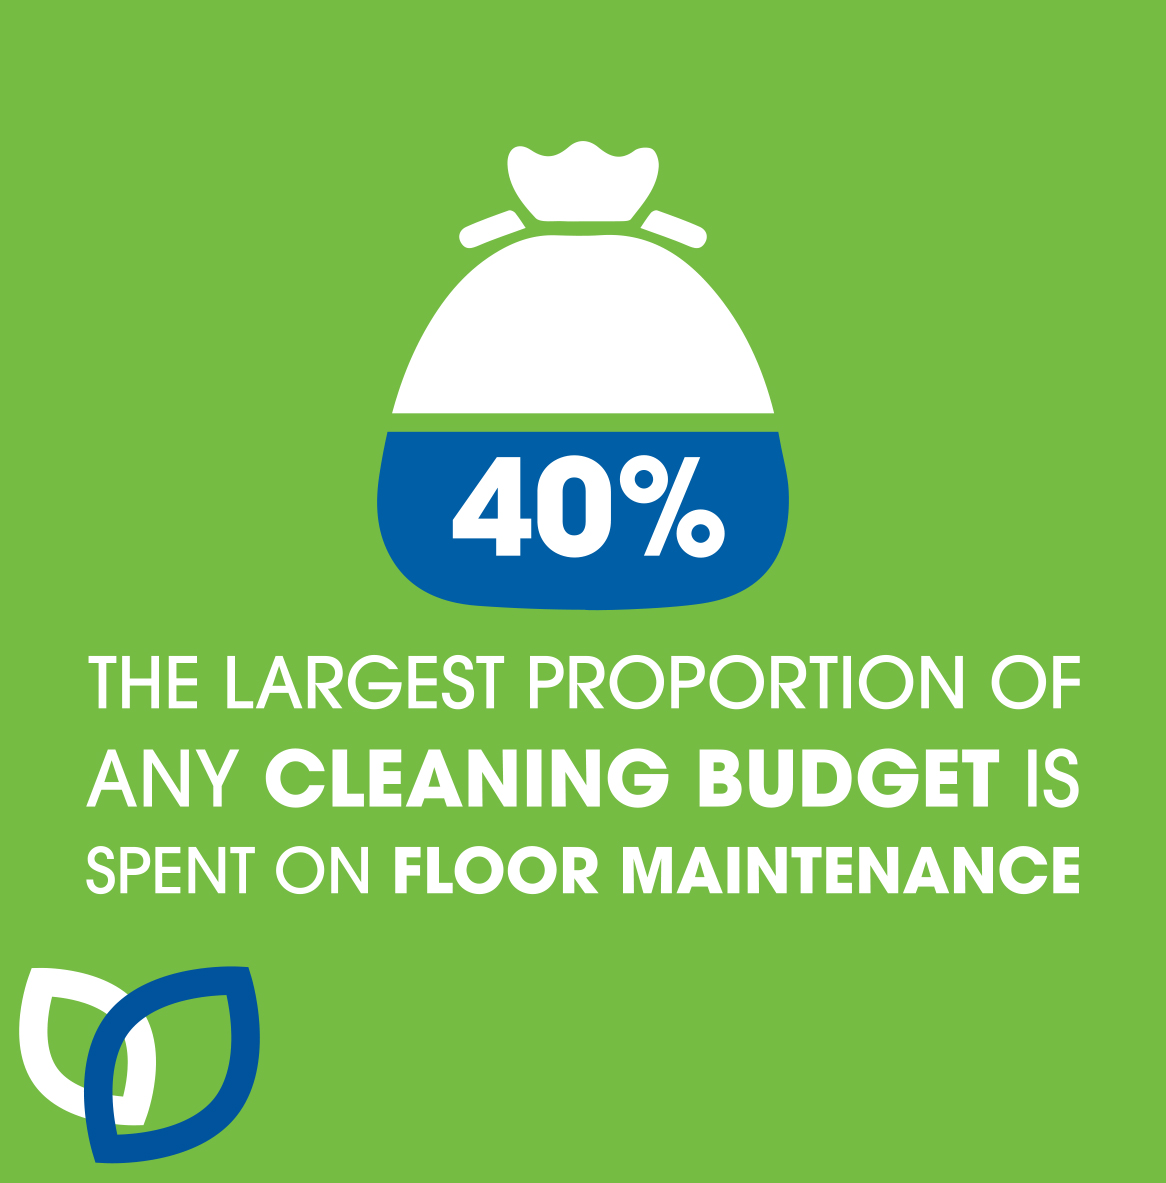 40% of cleaning budgets